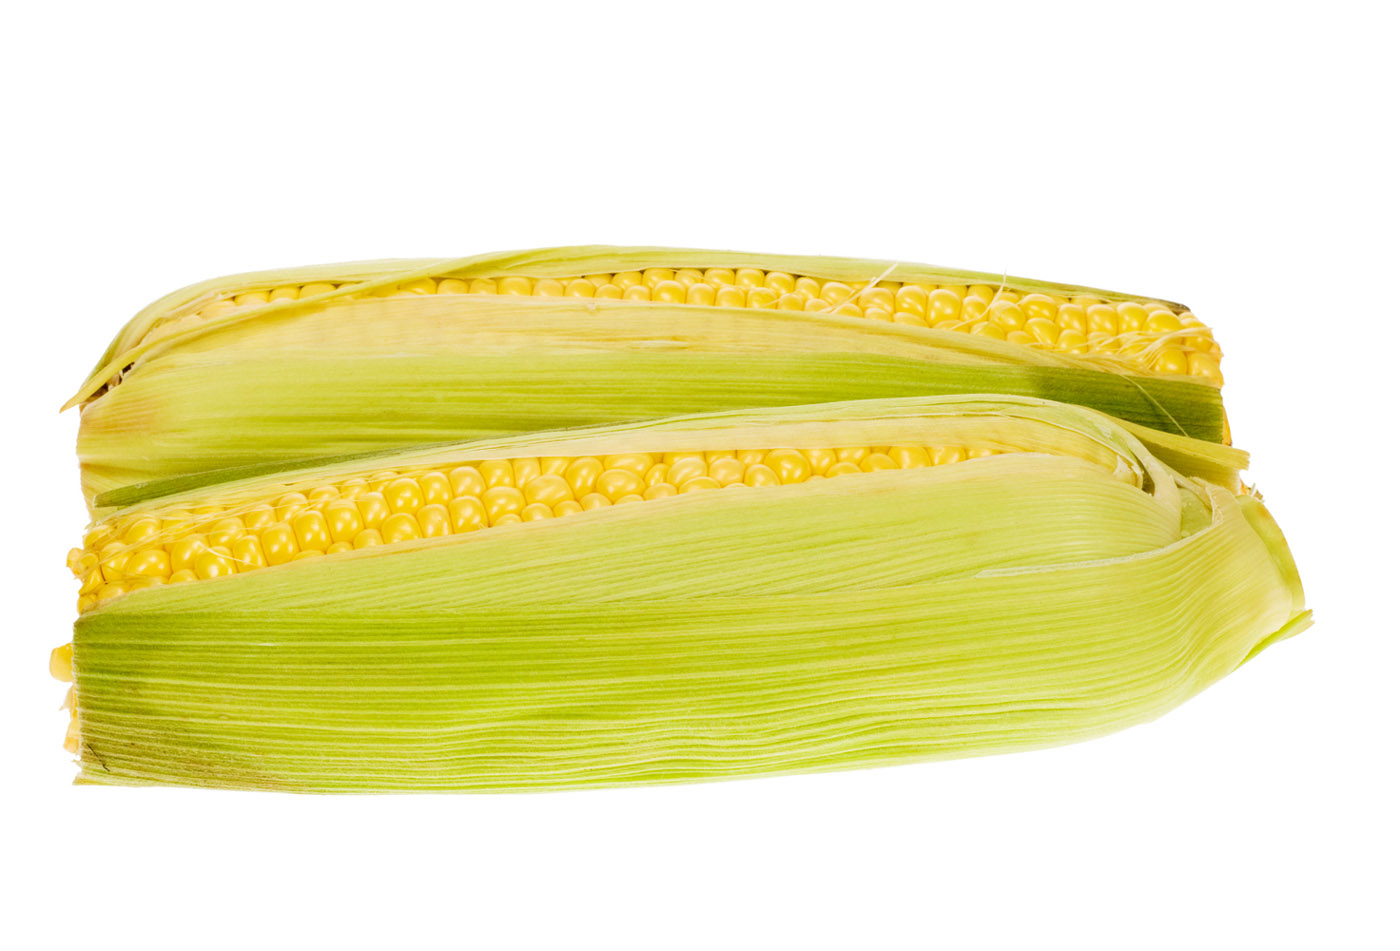 High-resolution images of corn 24689